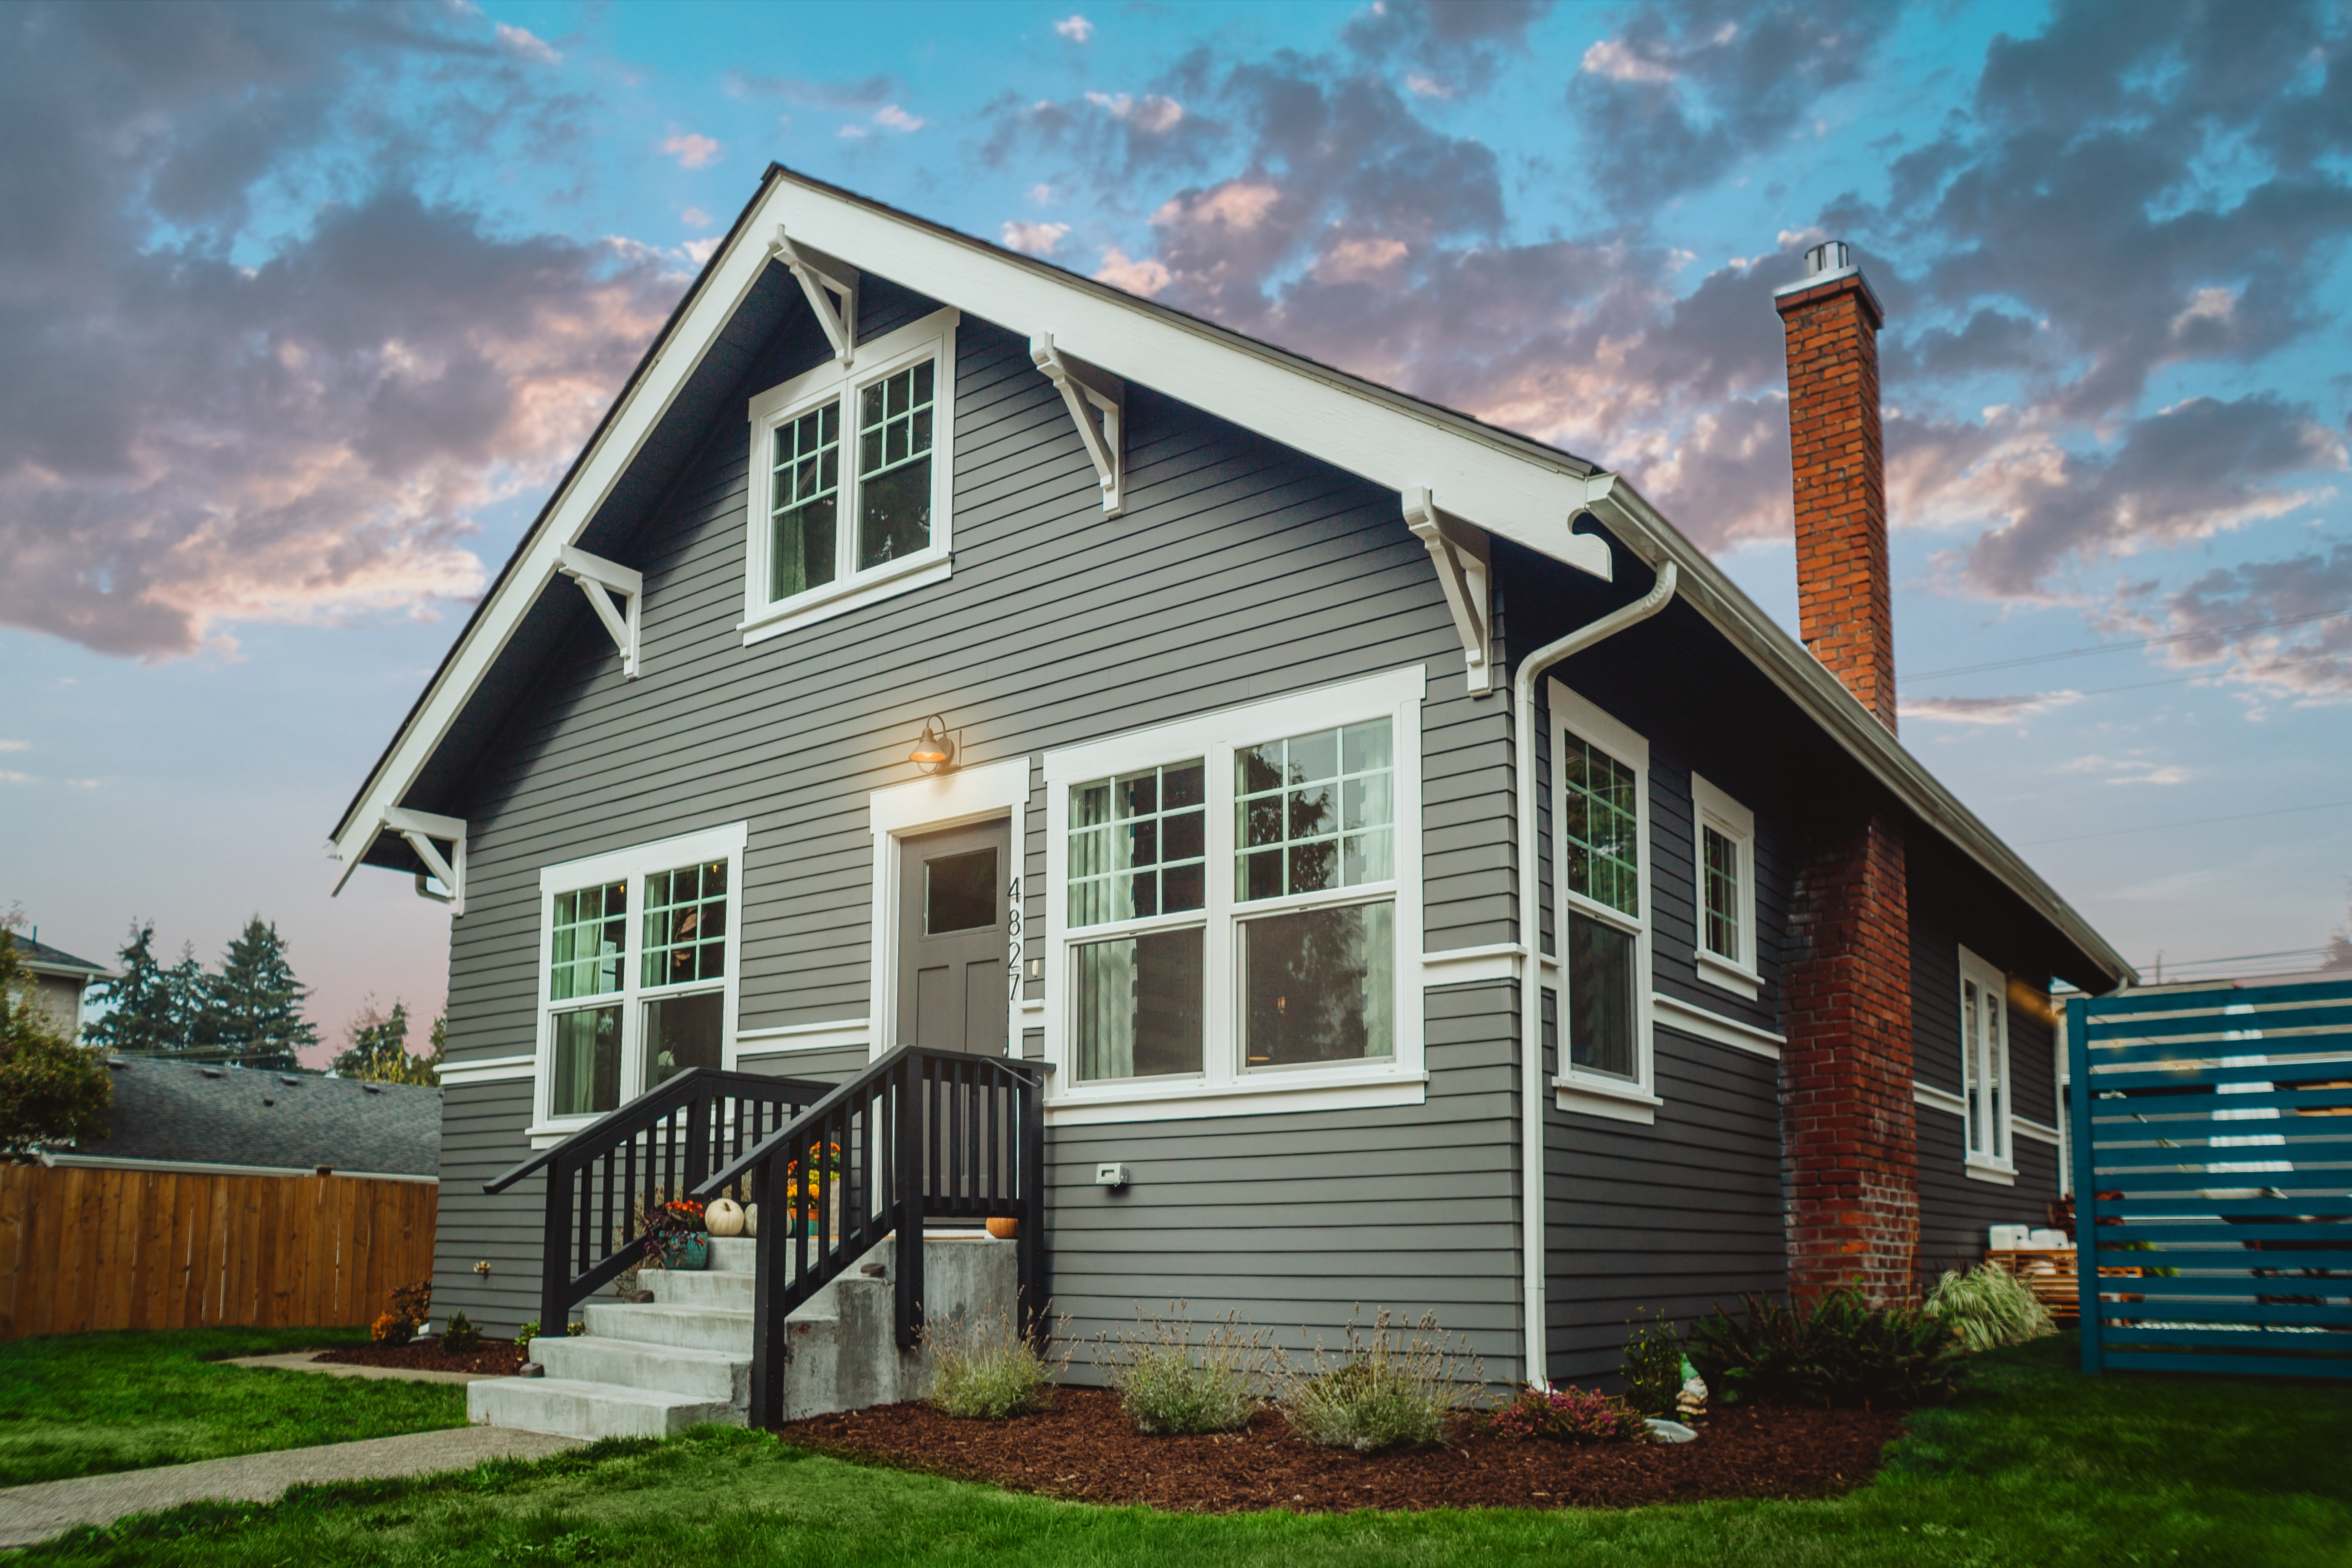 What costs are involved in flipping houses?